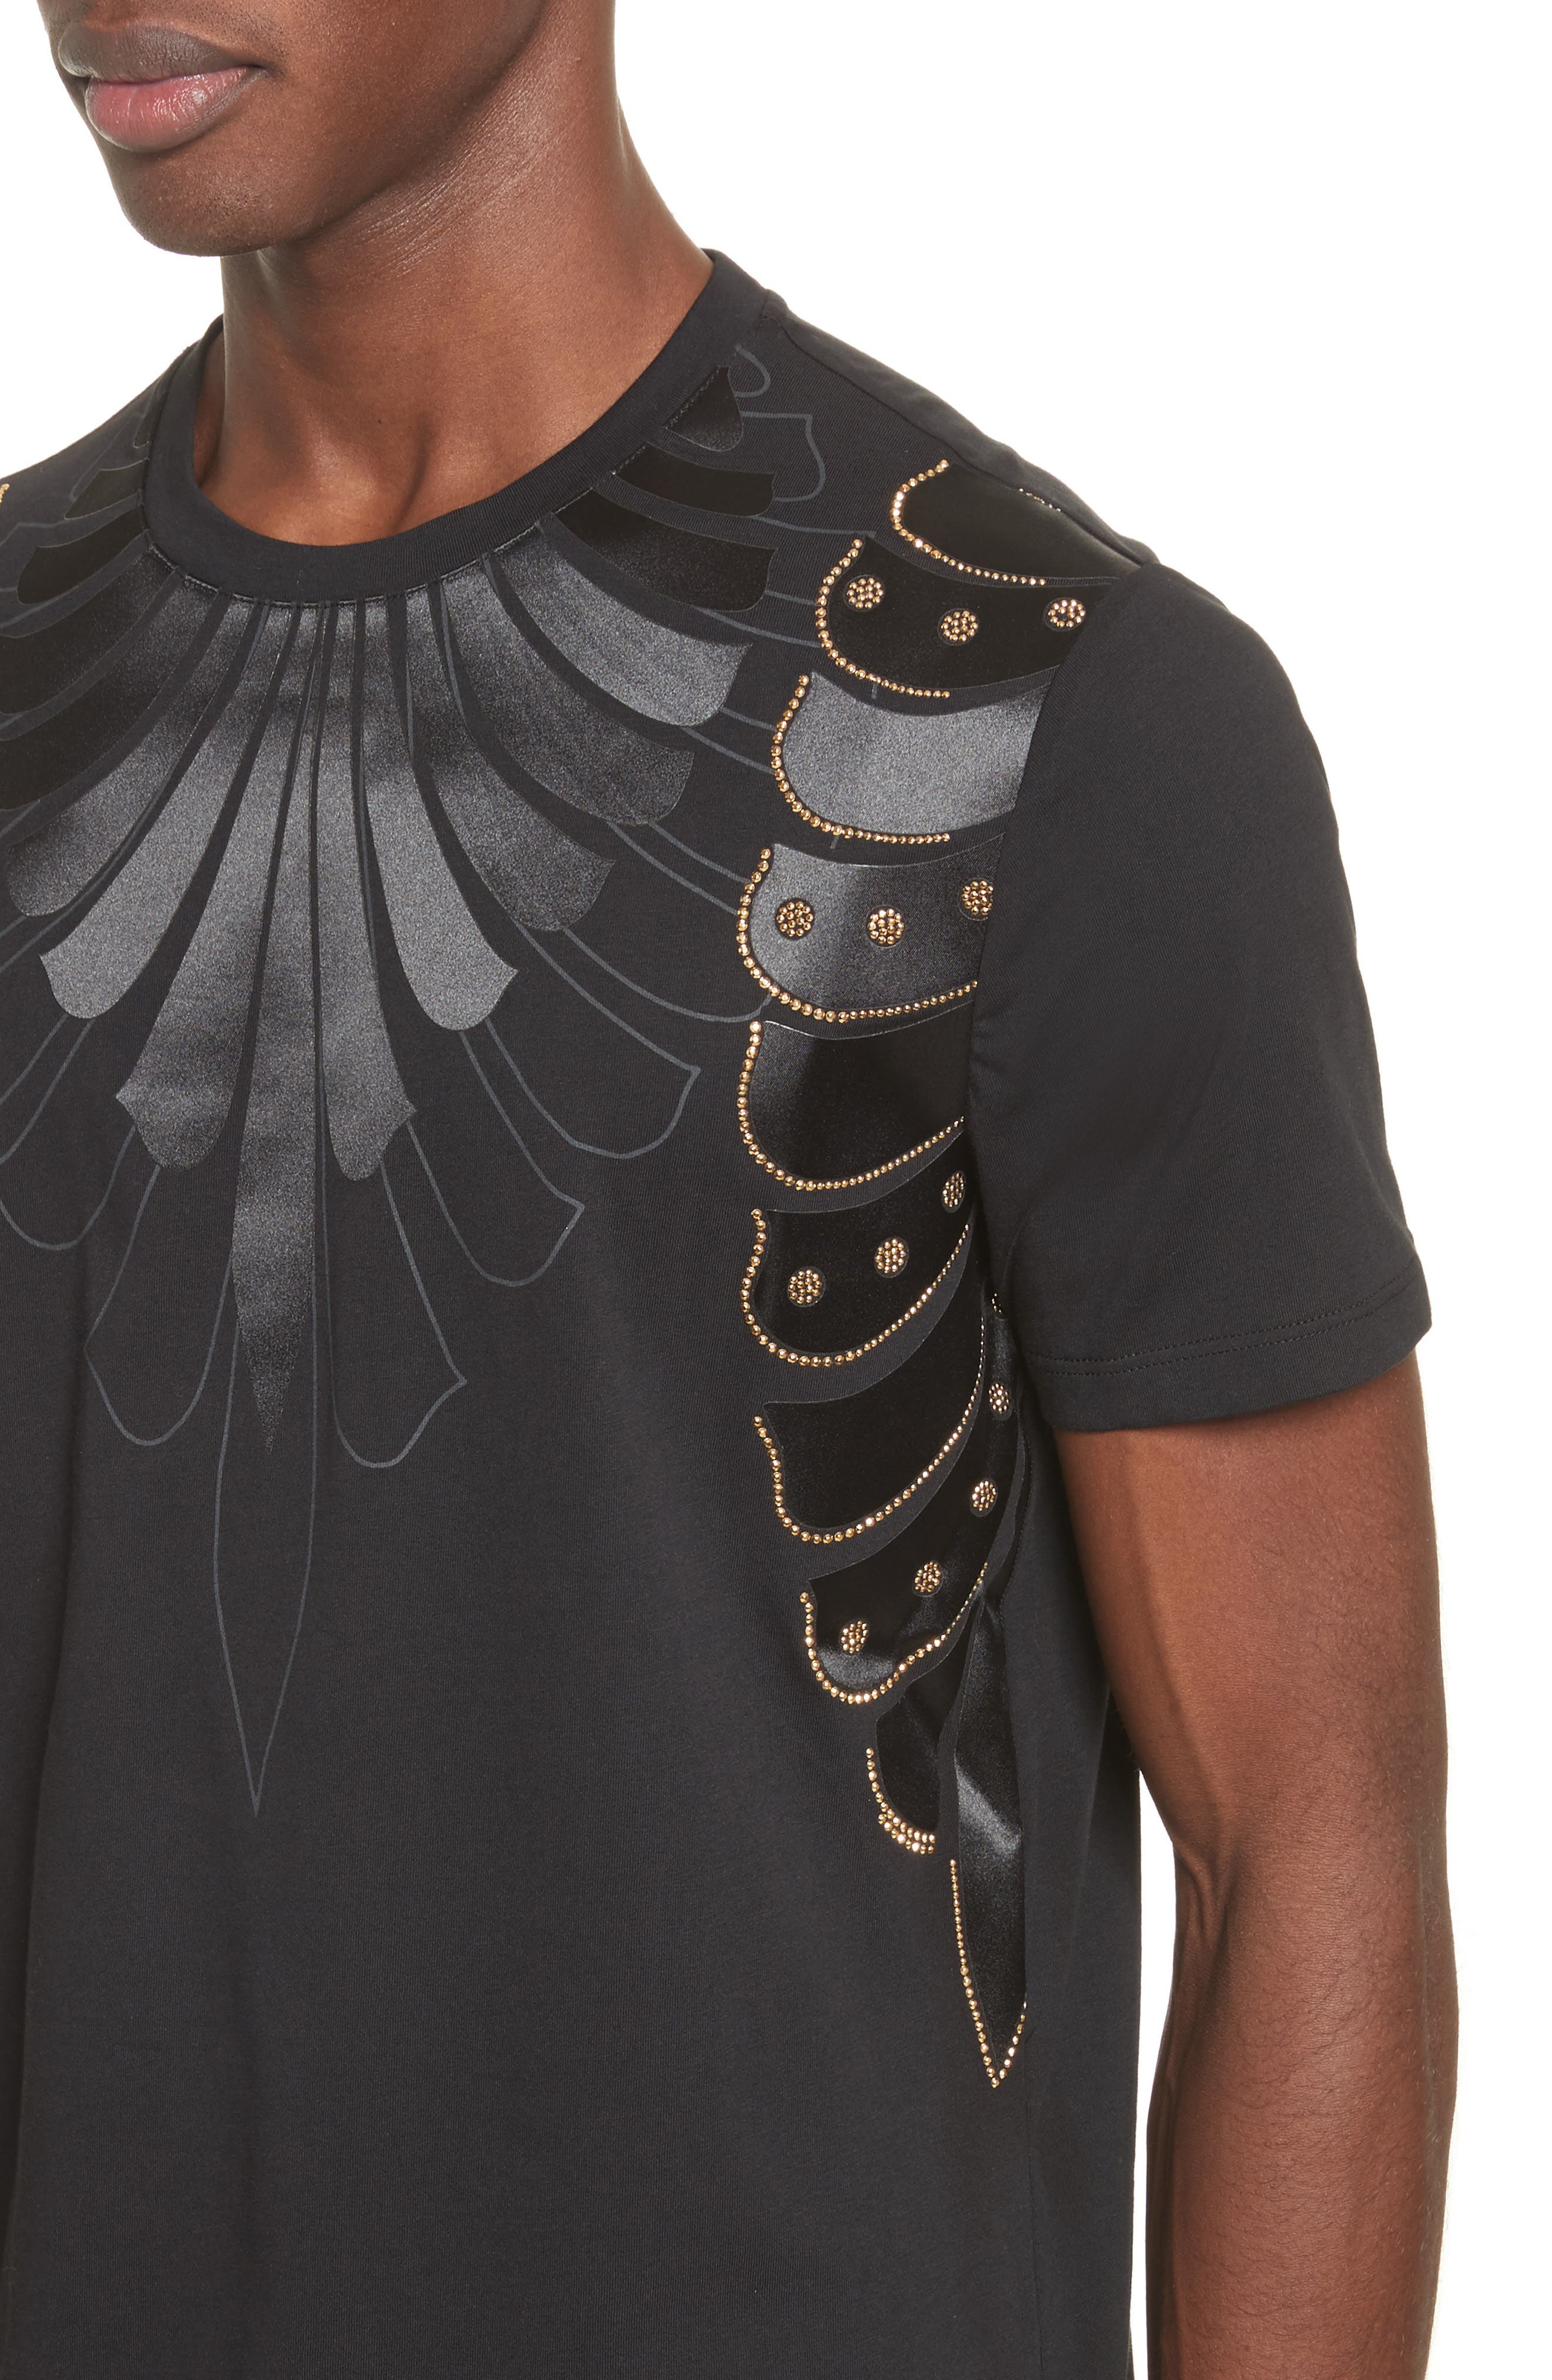 Armor Print T-Shirt,                             Alternate thumbnail 4, color,